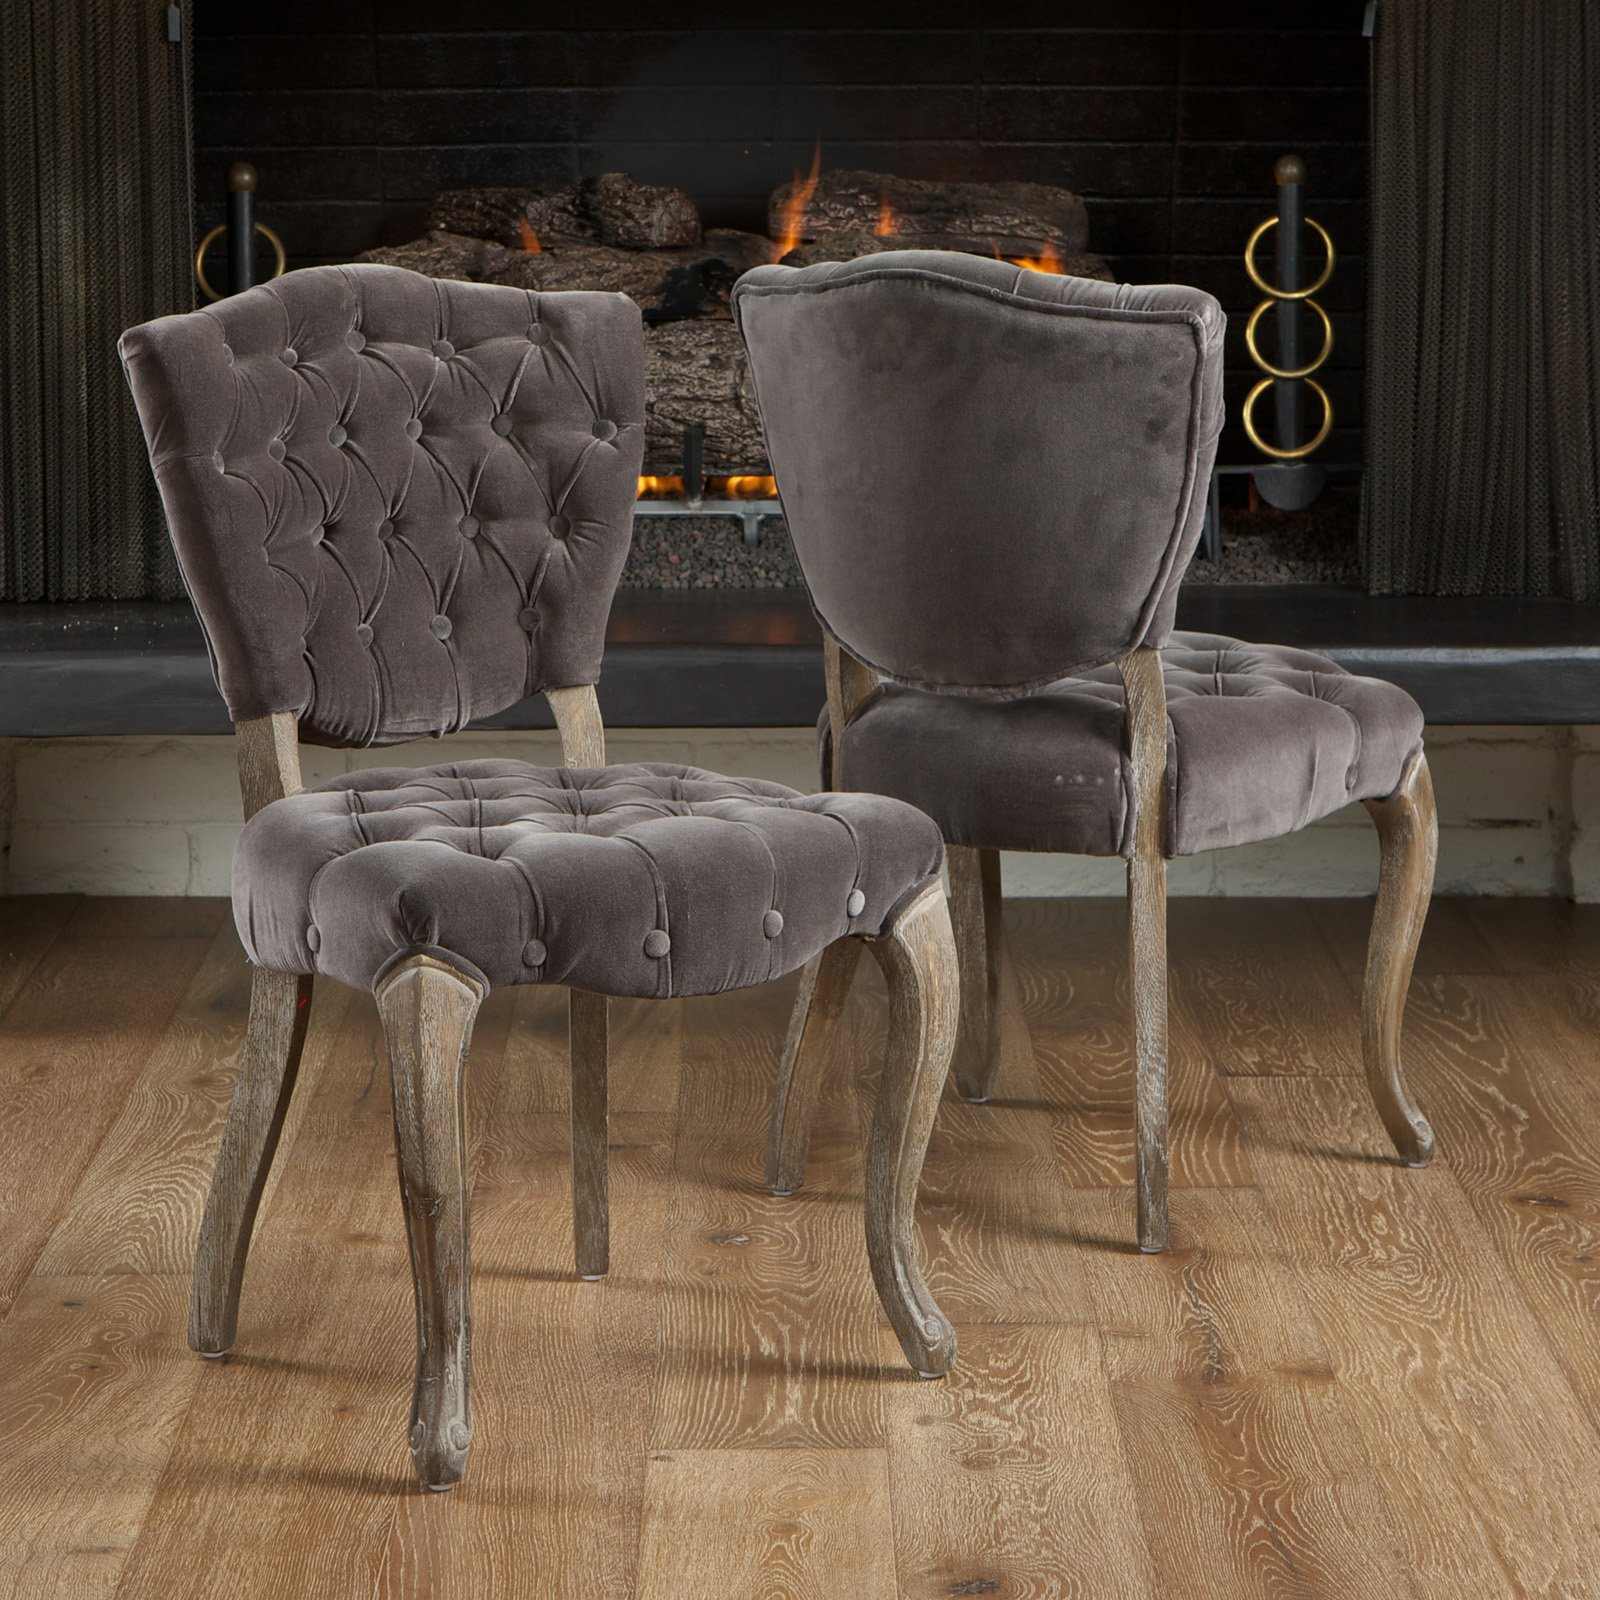 Best Selling Home Decor Bates Tufted Dining Chairs (Set of 2) 20.1W 33.5H